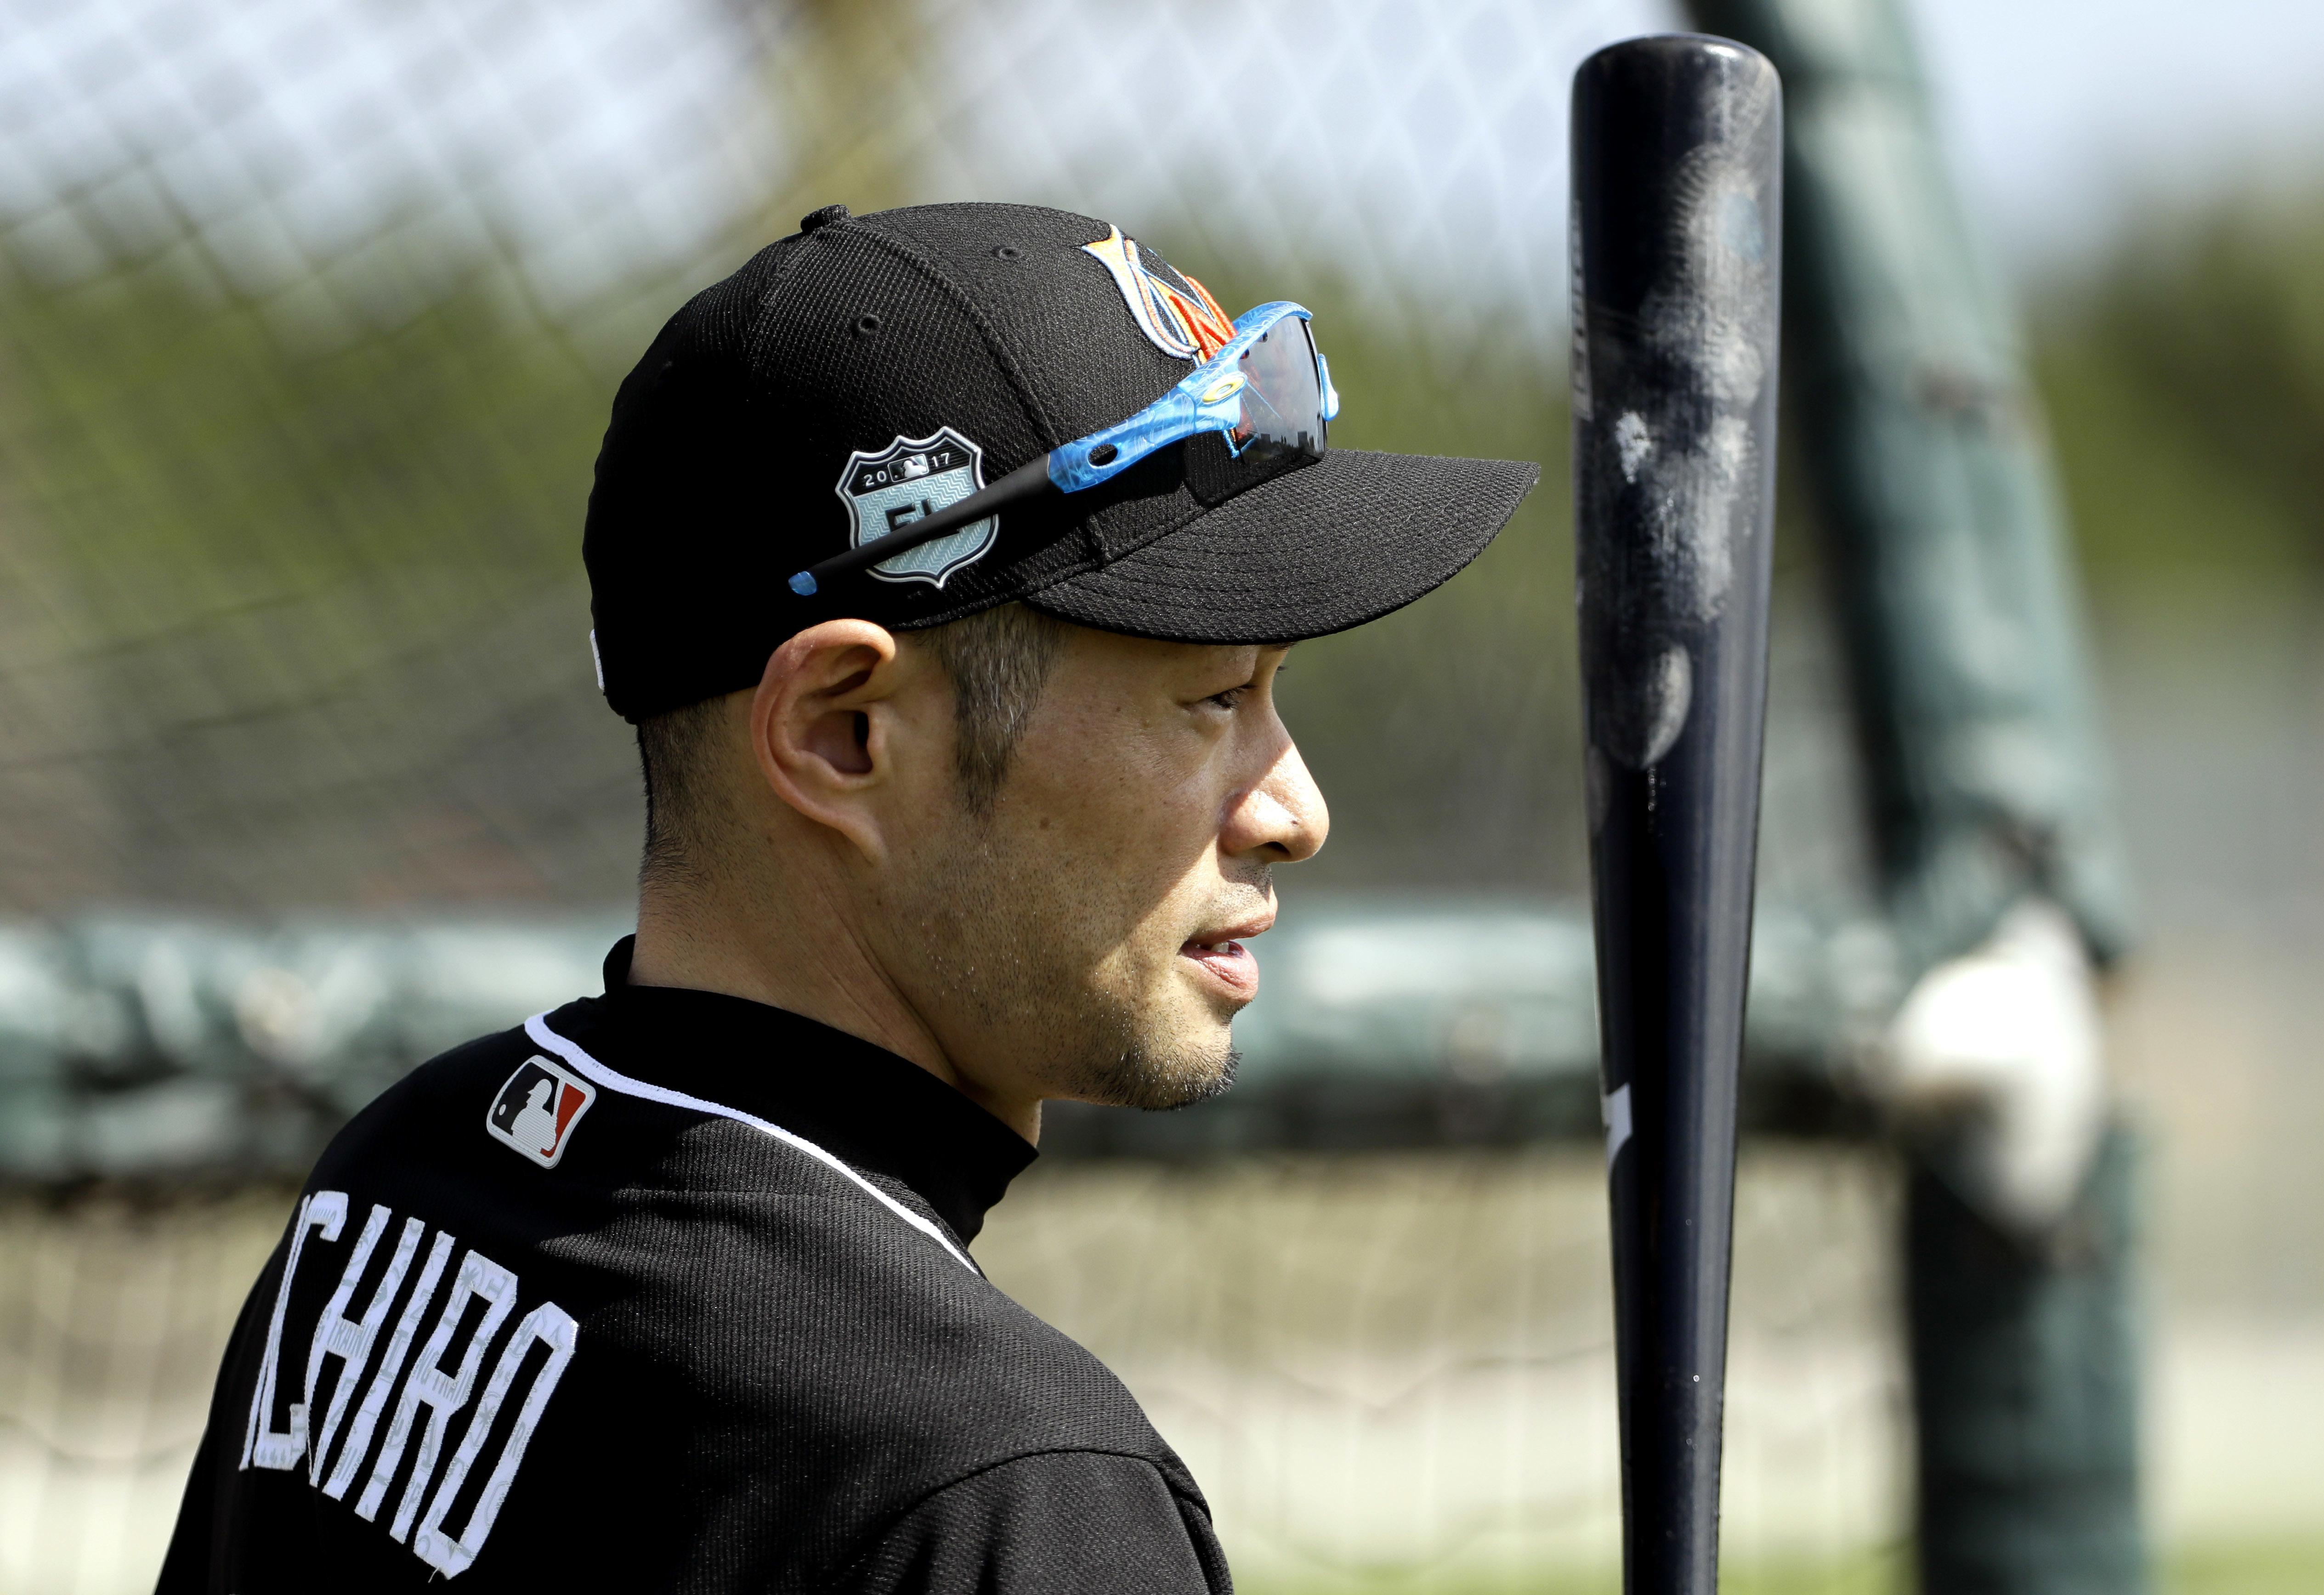 Marlins' Ichiro held out of workouts following collision | The ...